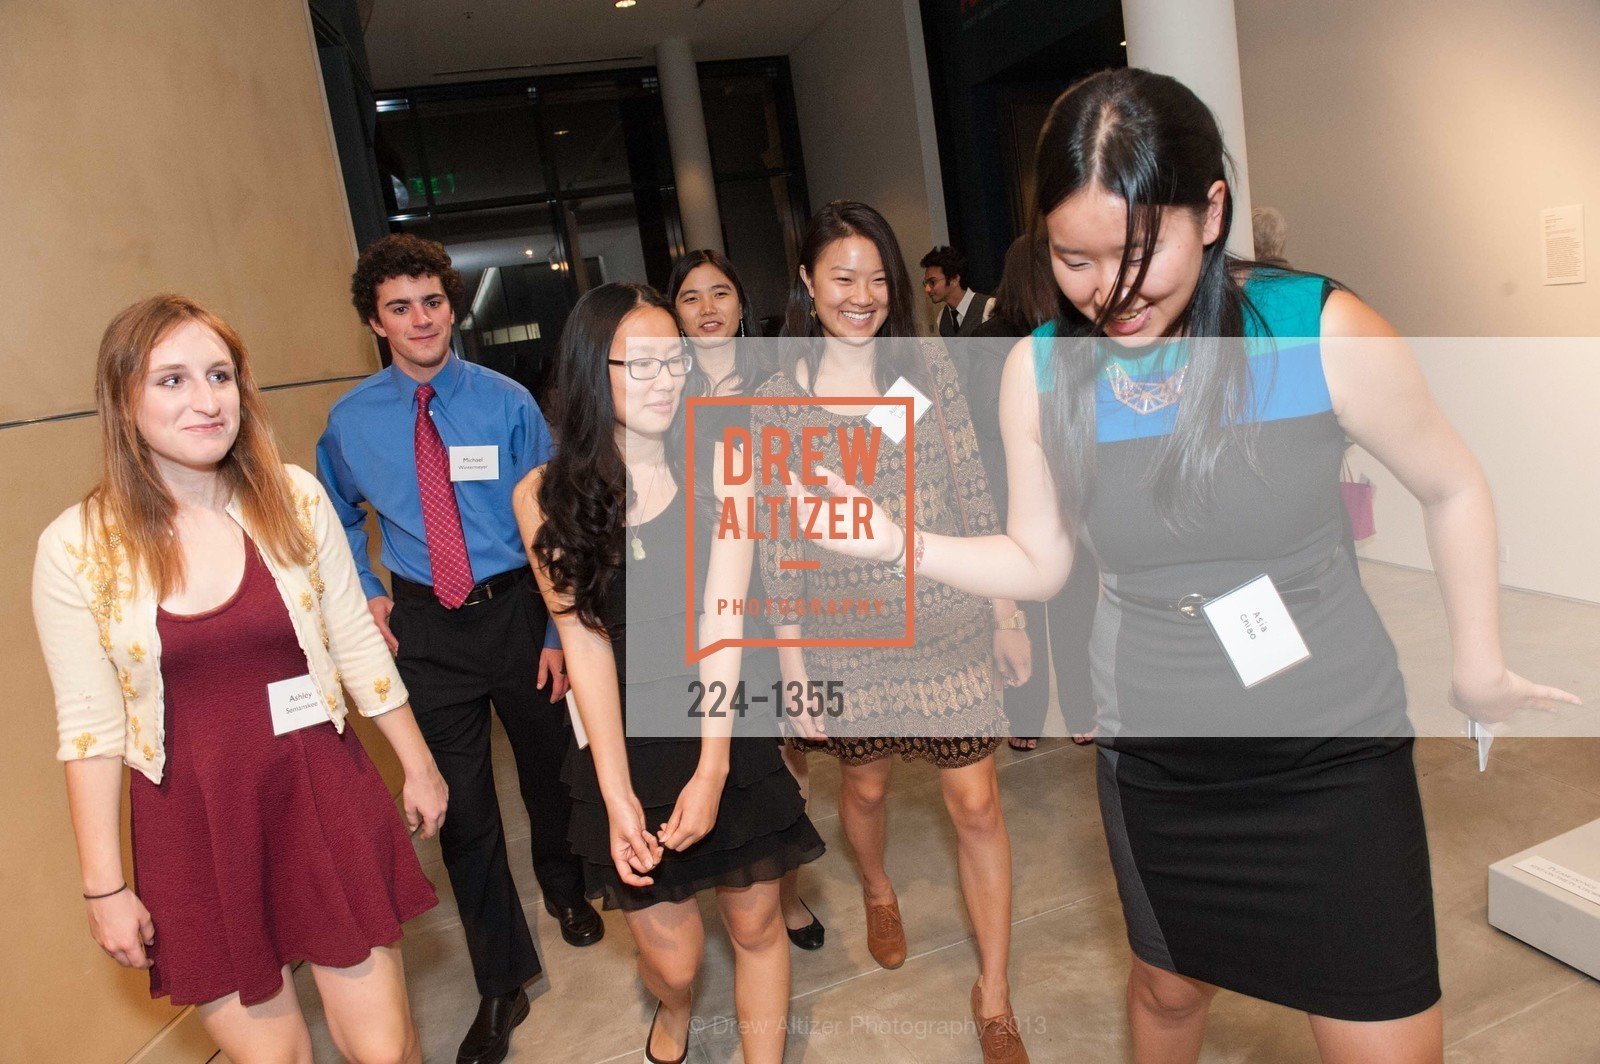 Ashley Semanskee, Michael Wintermeyer, Jackie Low, Alina Luk, Asia Chiao, Photo #224-1355